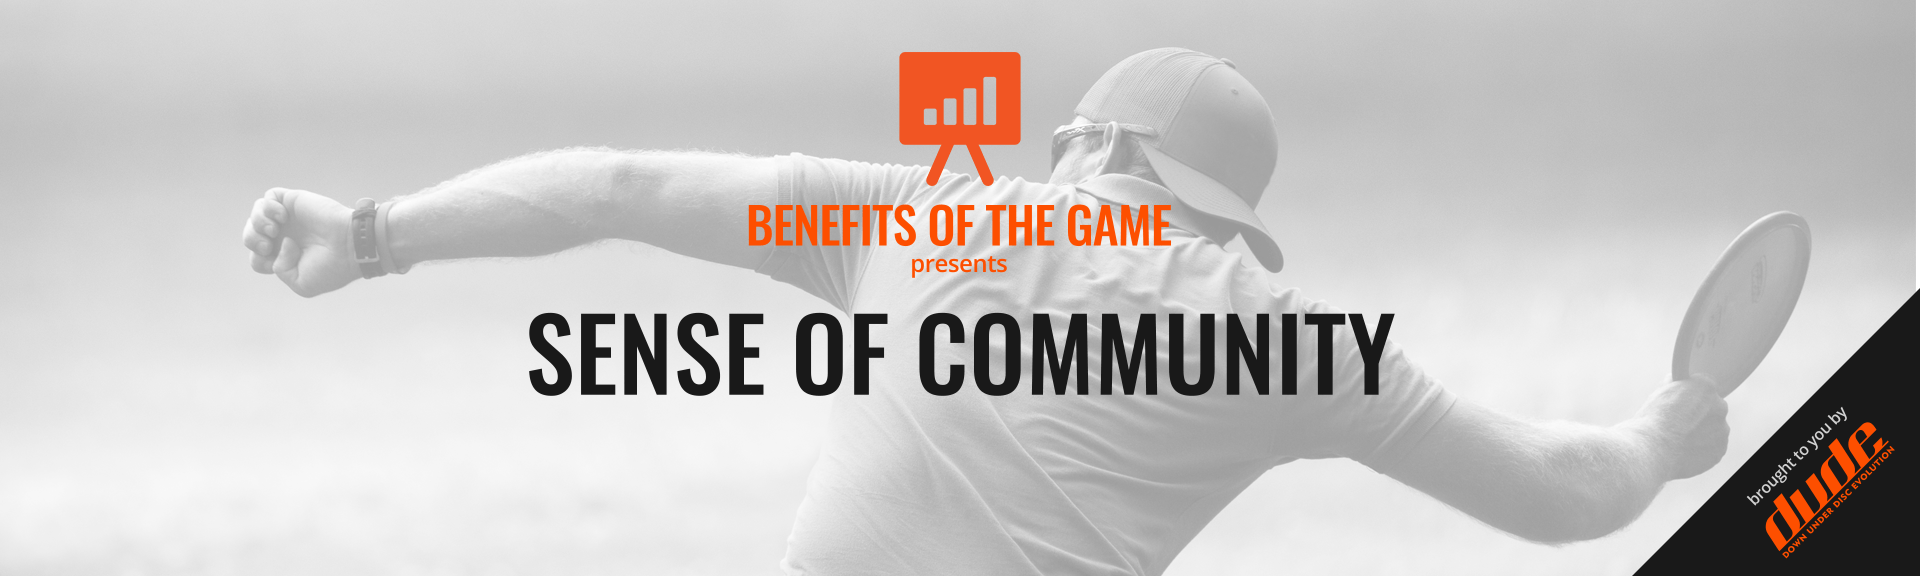 Dude Clothing - Benefits of the game - Sense of Community